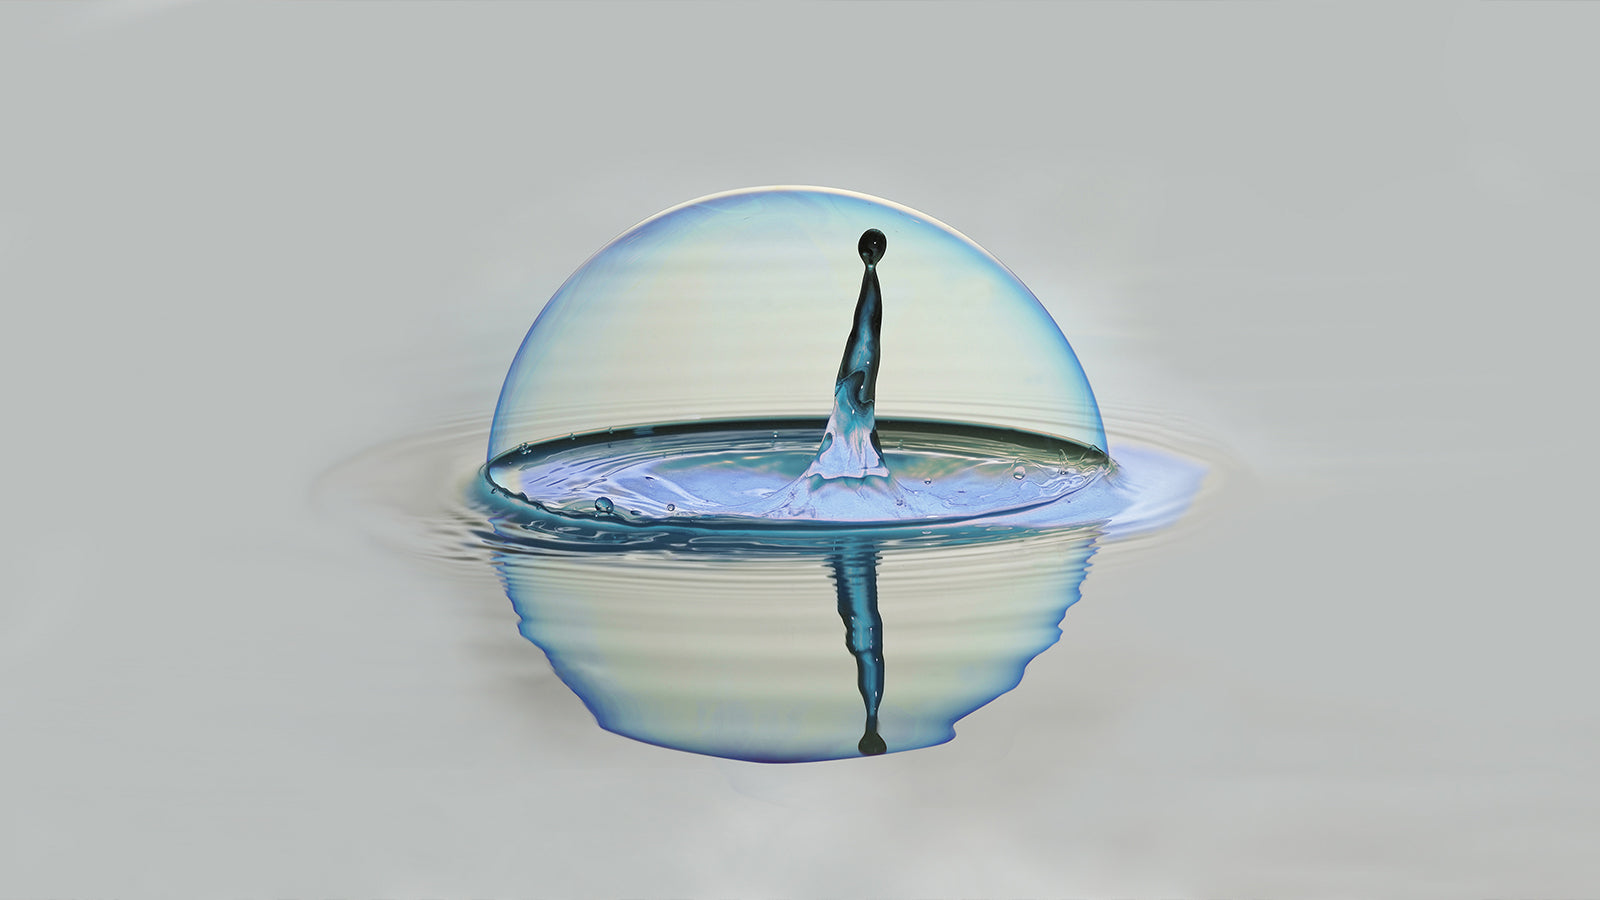 dr. know blog on hernia - water bubble symbolizing hernia bulge